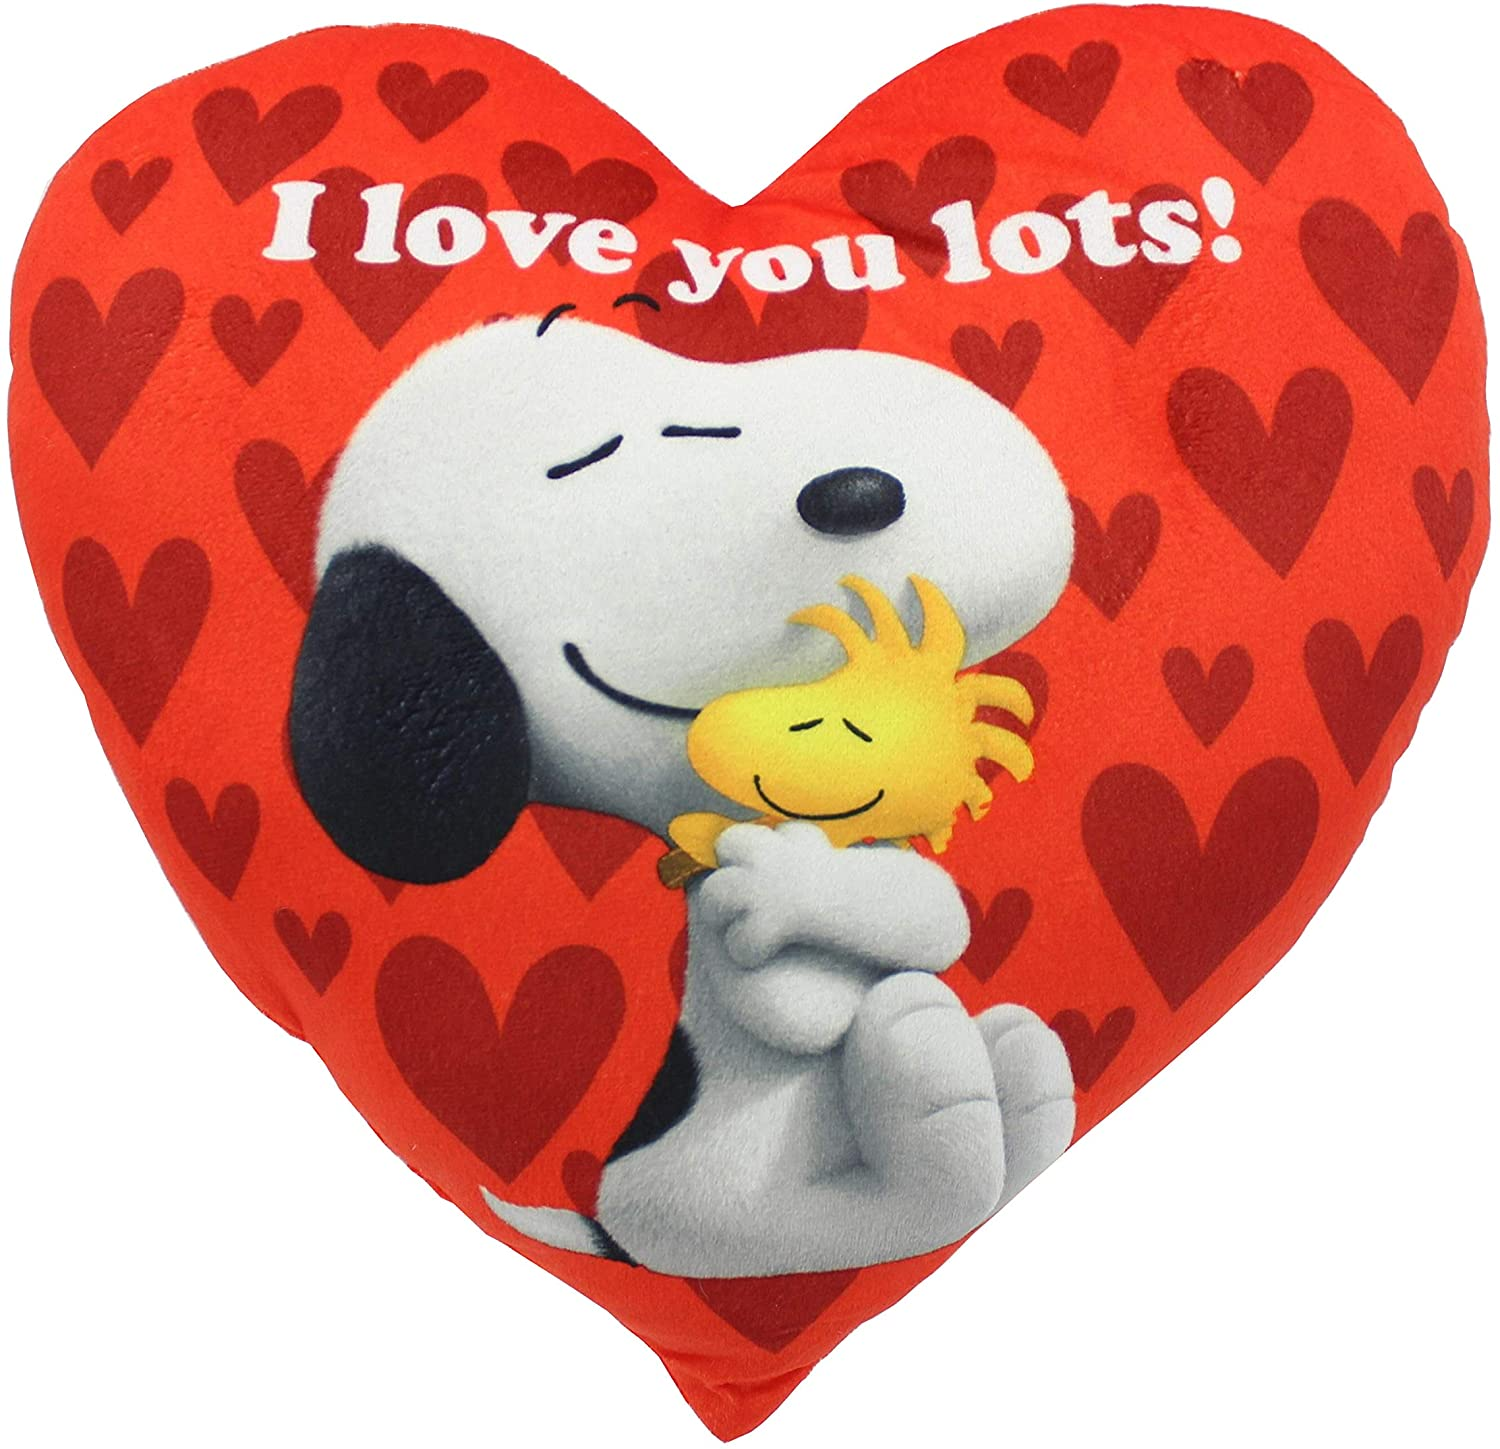 """Peanuts Valentine's Snoopy And Woodstock 14"""" I Love You Lots Red Heart Pillow"""